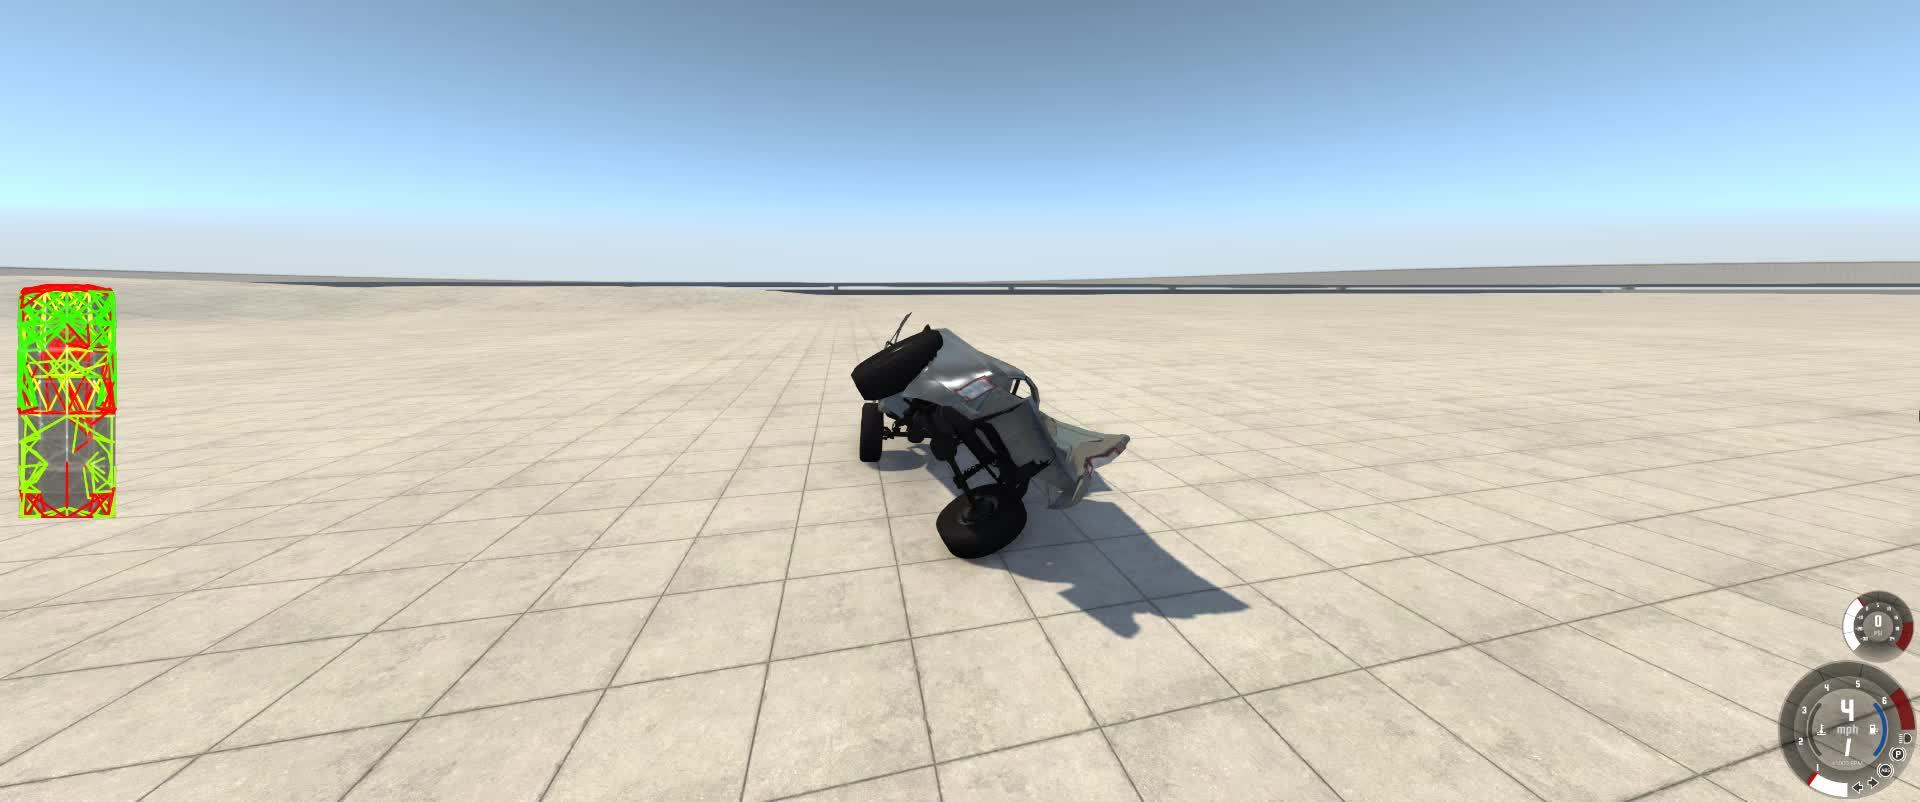 beamng, Drives like a charm (reddit) GIFs